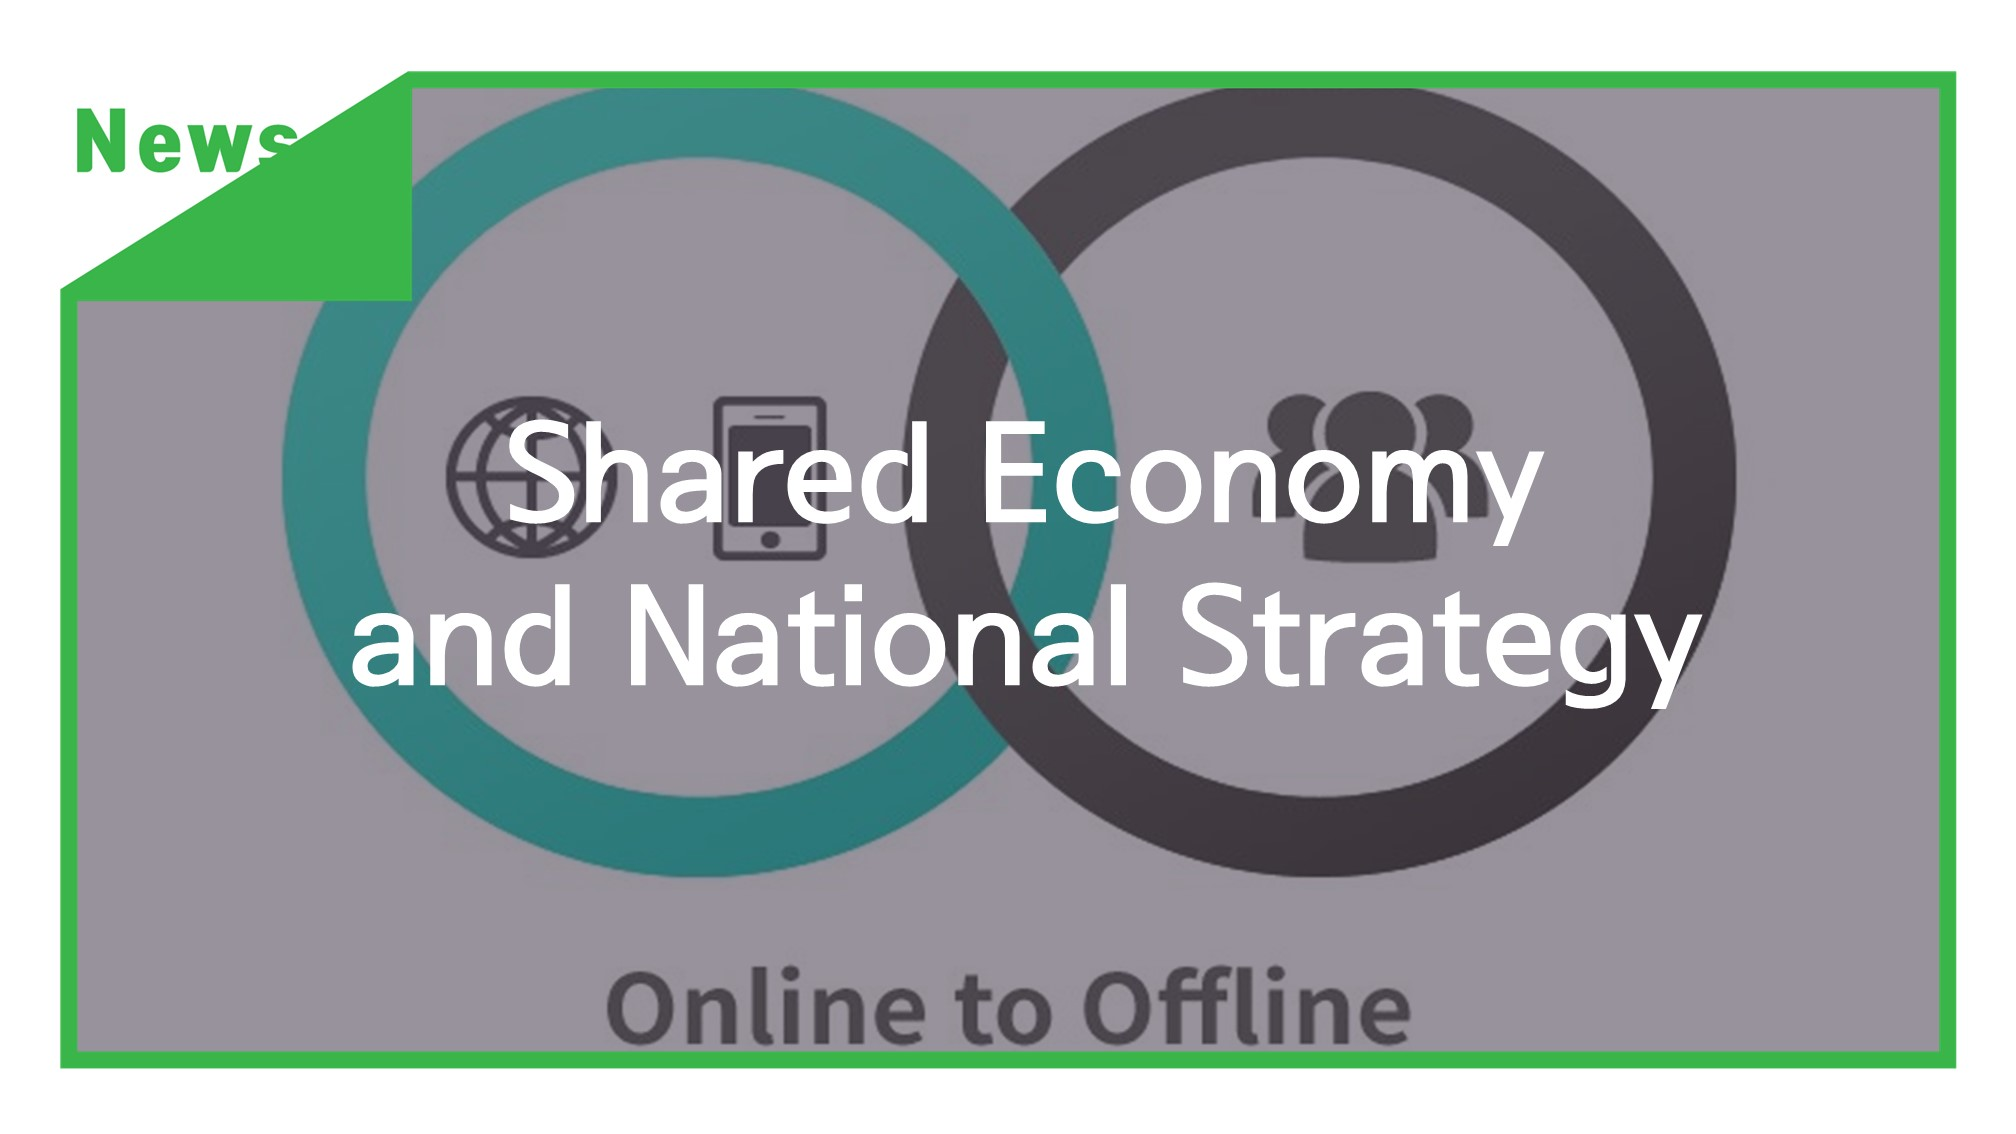 [News] shared Economy and National Strategy